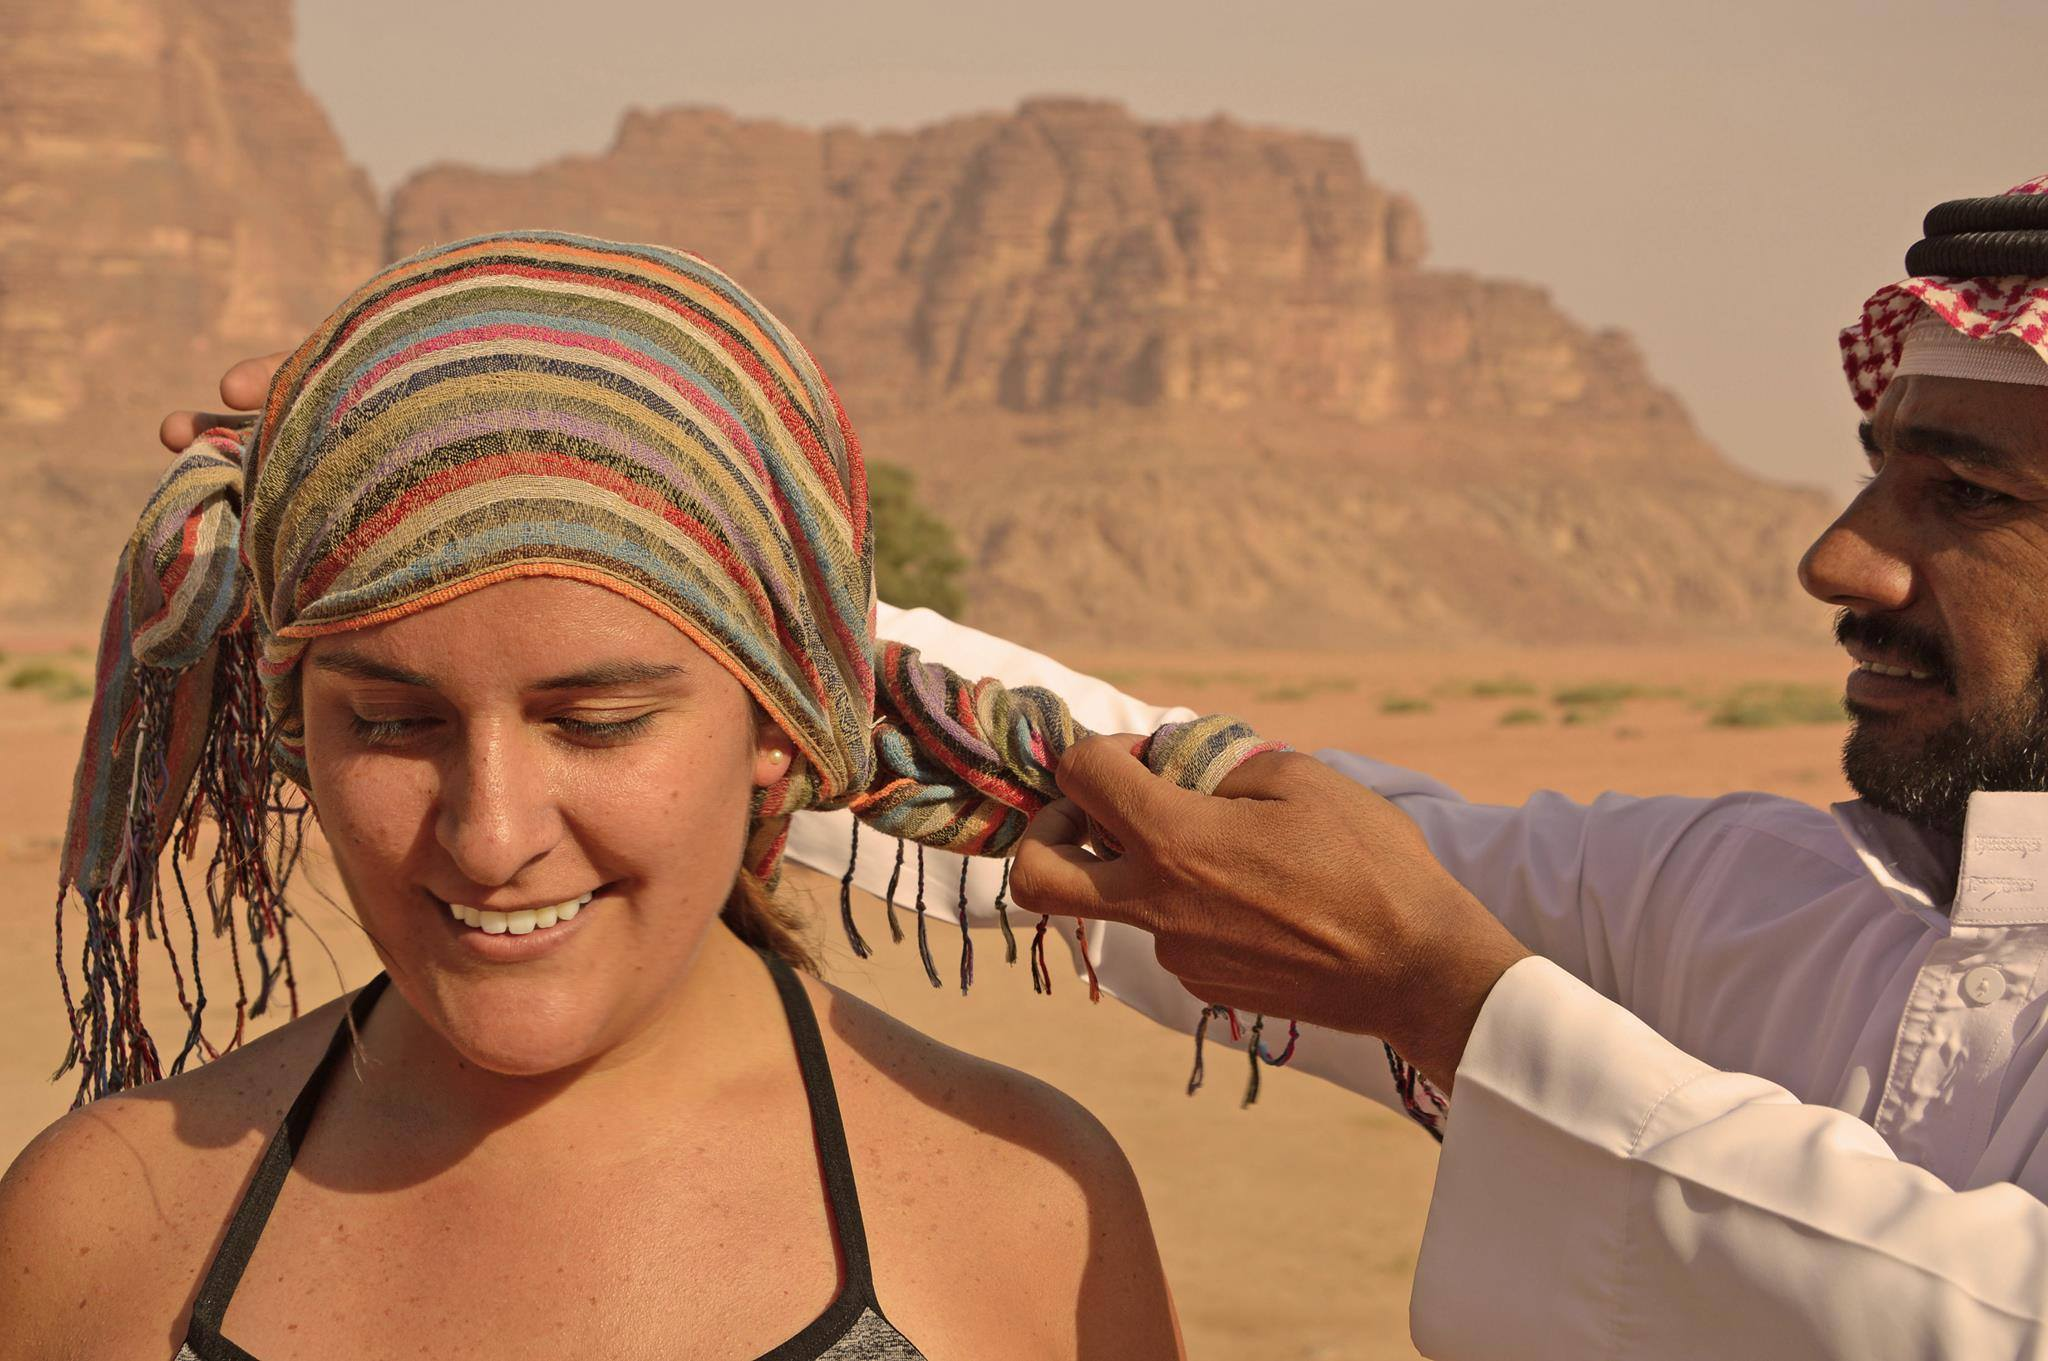 Digital nomad traveling and learning about local culture in Jordan